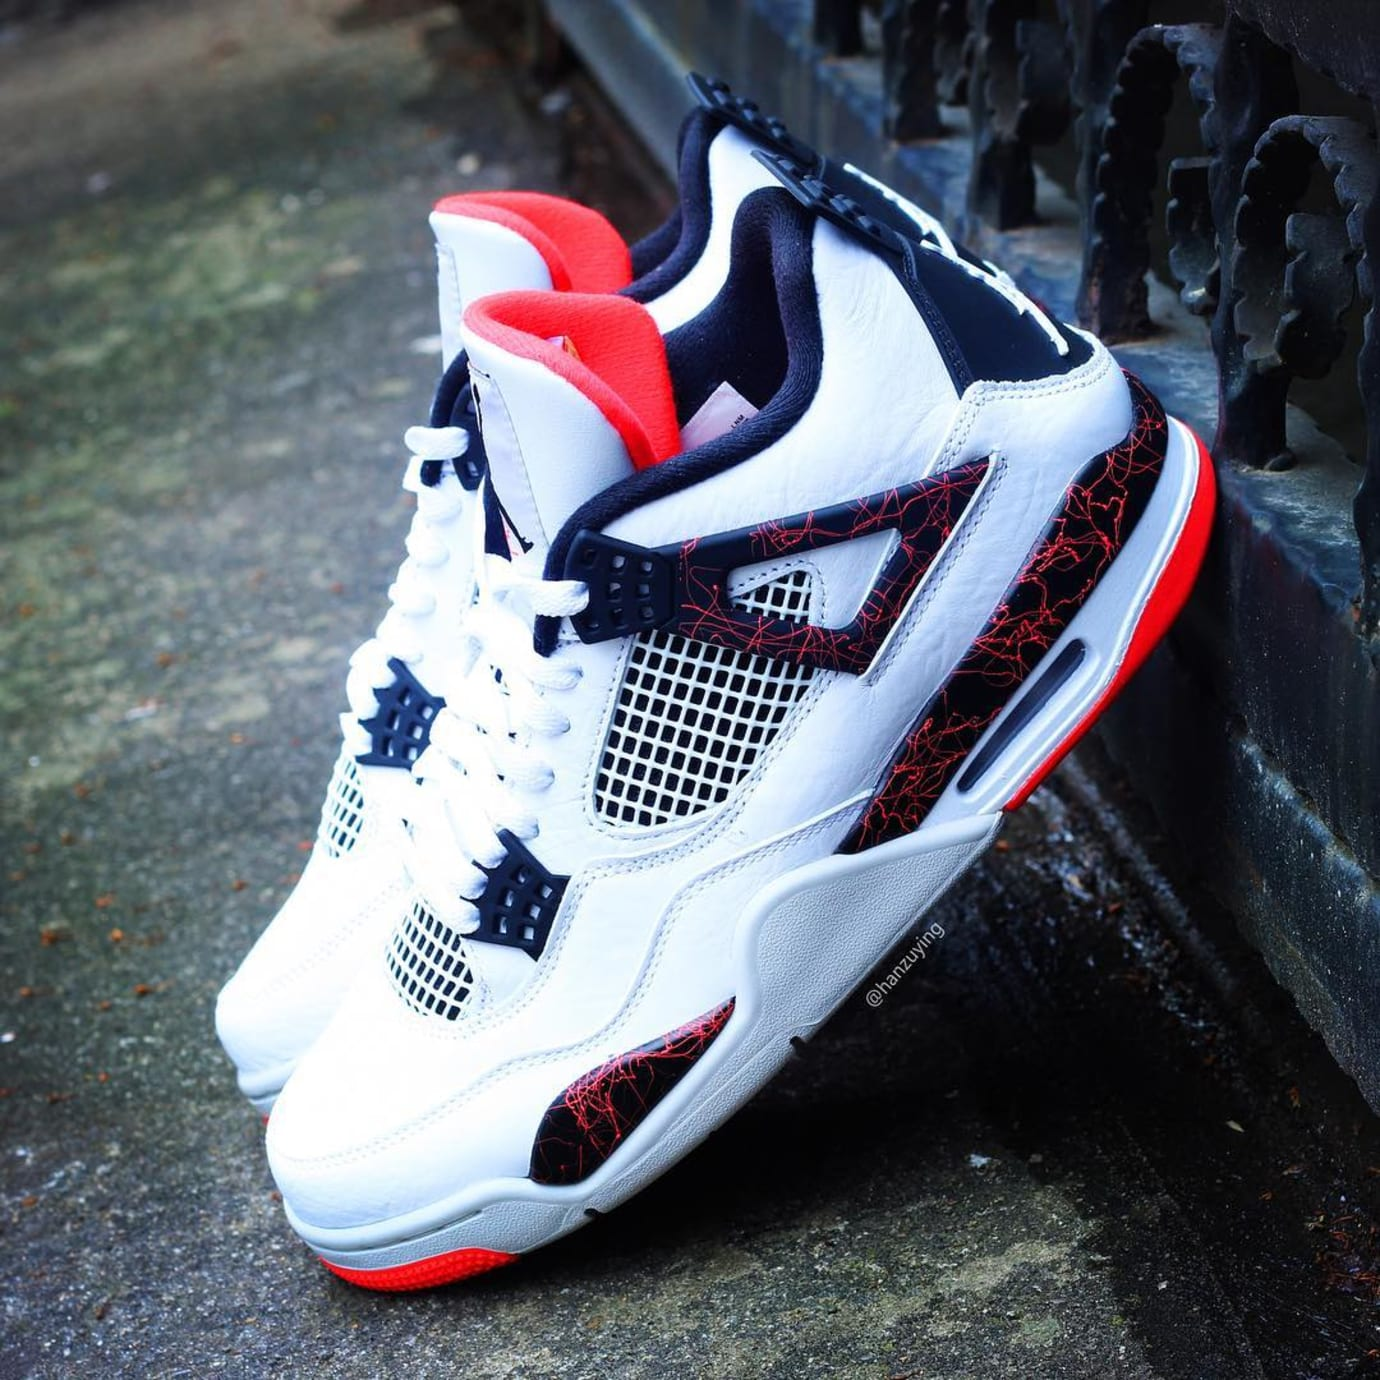 new product 279a7 496ac Air Jordan 4 Retro 'White/Black-Light Crimson-Pale Citron ...